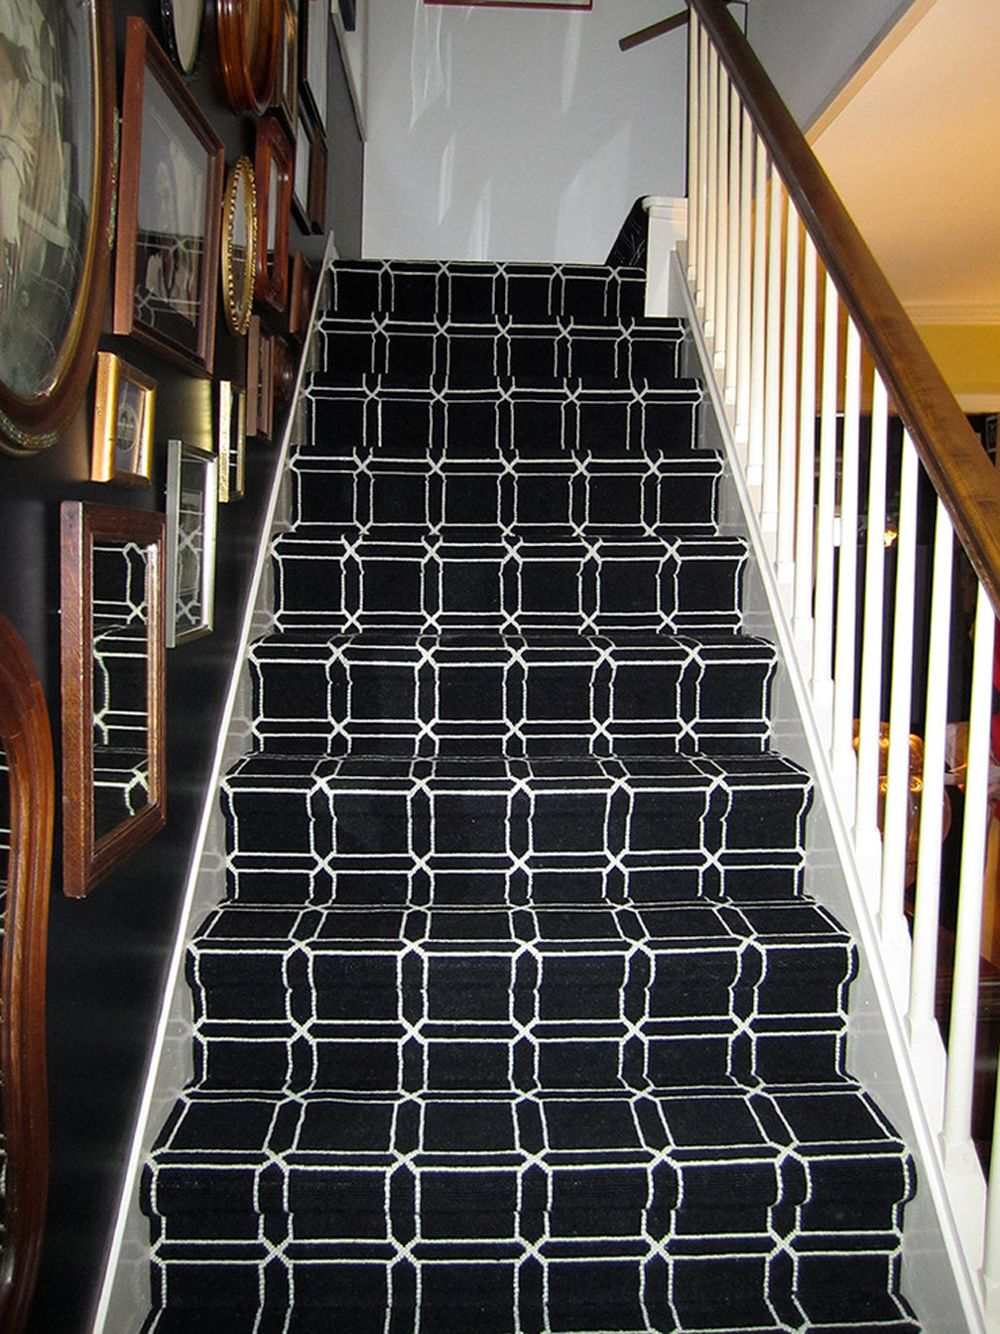 Best Carpet For Stairs How To Pick The Best One Out There 400 x 300